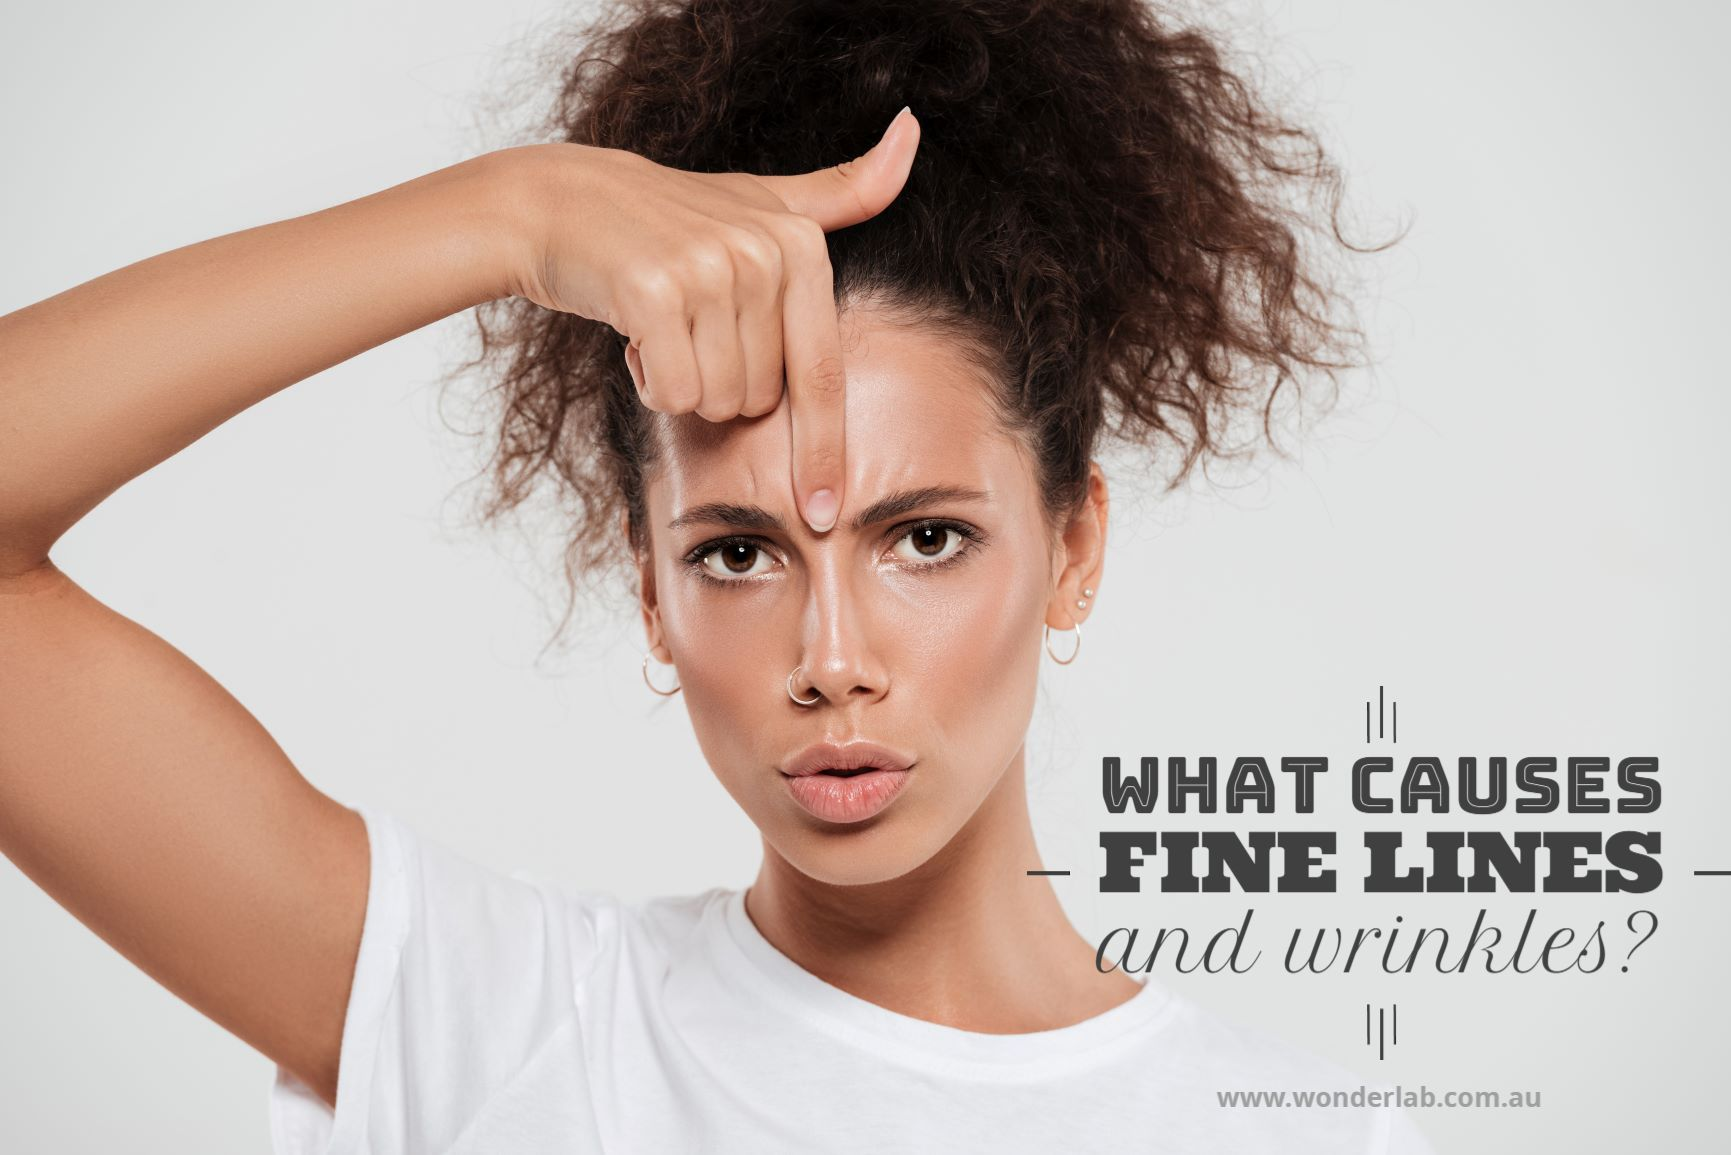 What causes fine lines and wrinkles?